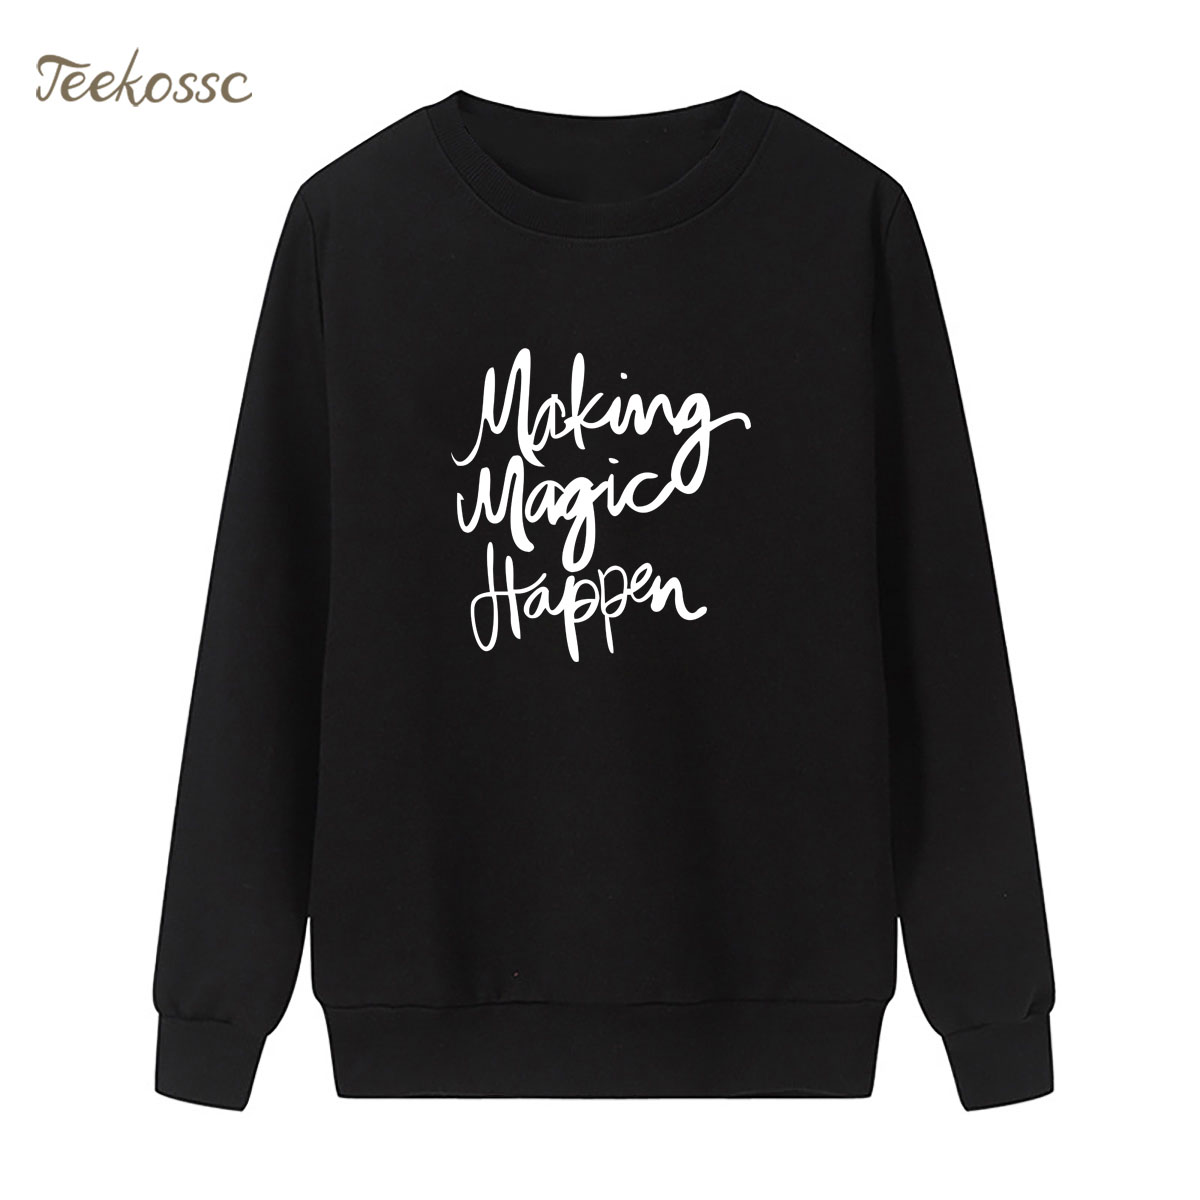 Making Magic Happen Sweatshirt Funny Print Hoodie 2018 New Brand Winter Autumn Women Lasdies Pullover Loose Fleece Streetwear